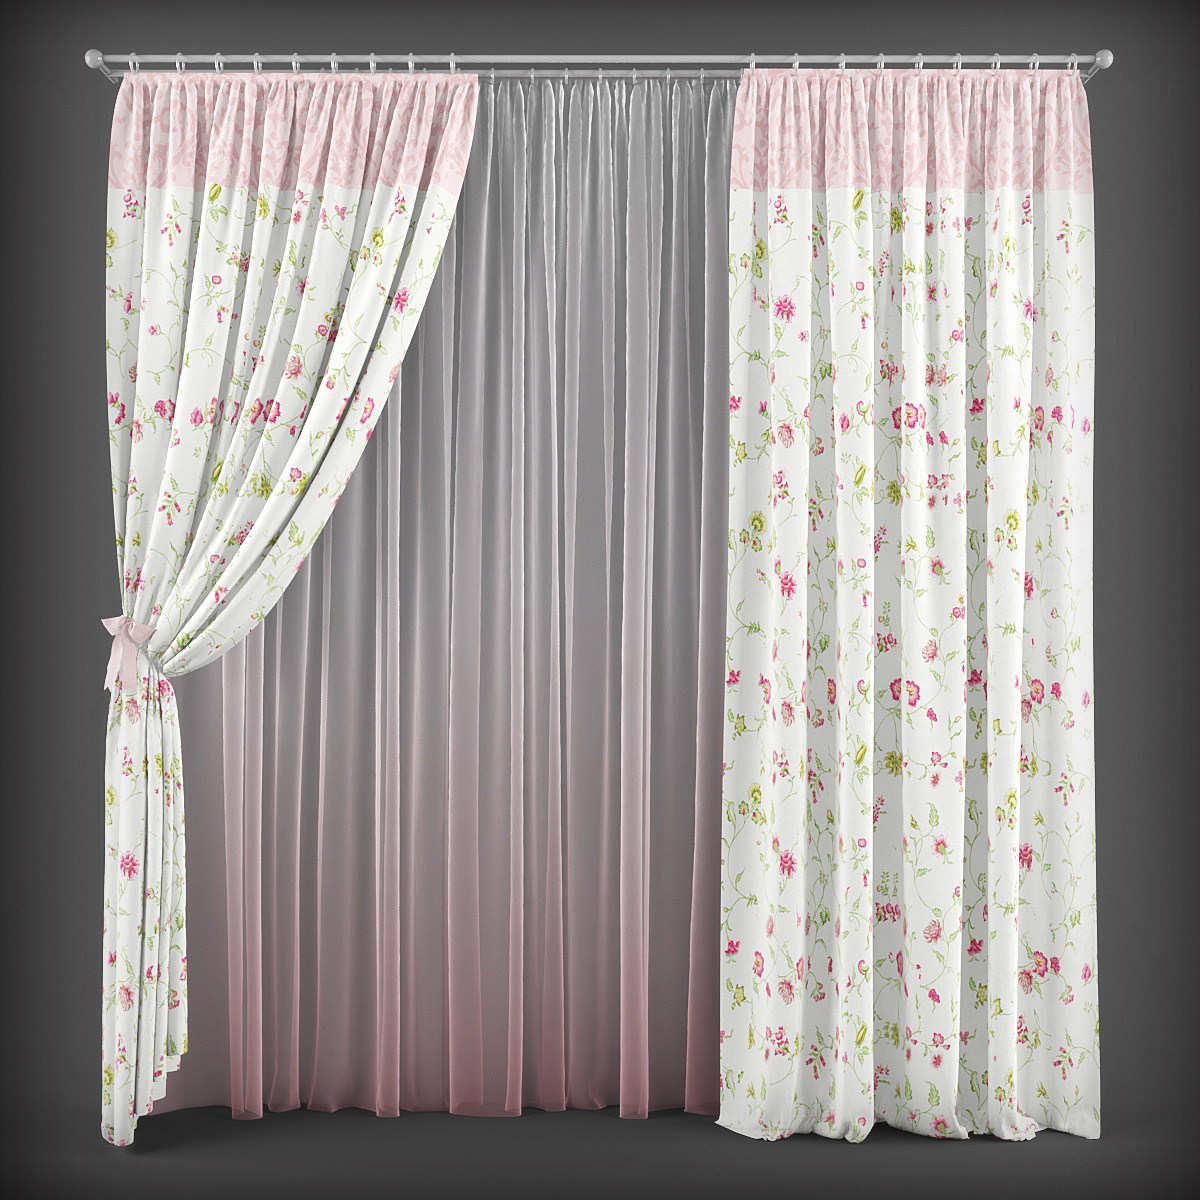 3d Curtain Model 72 Free Download